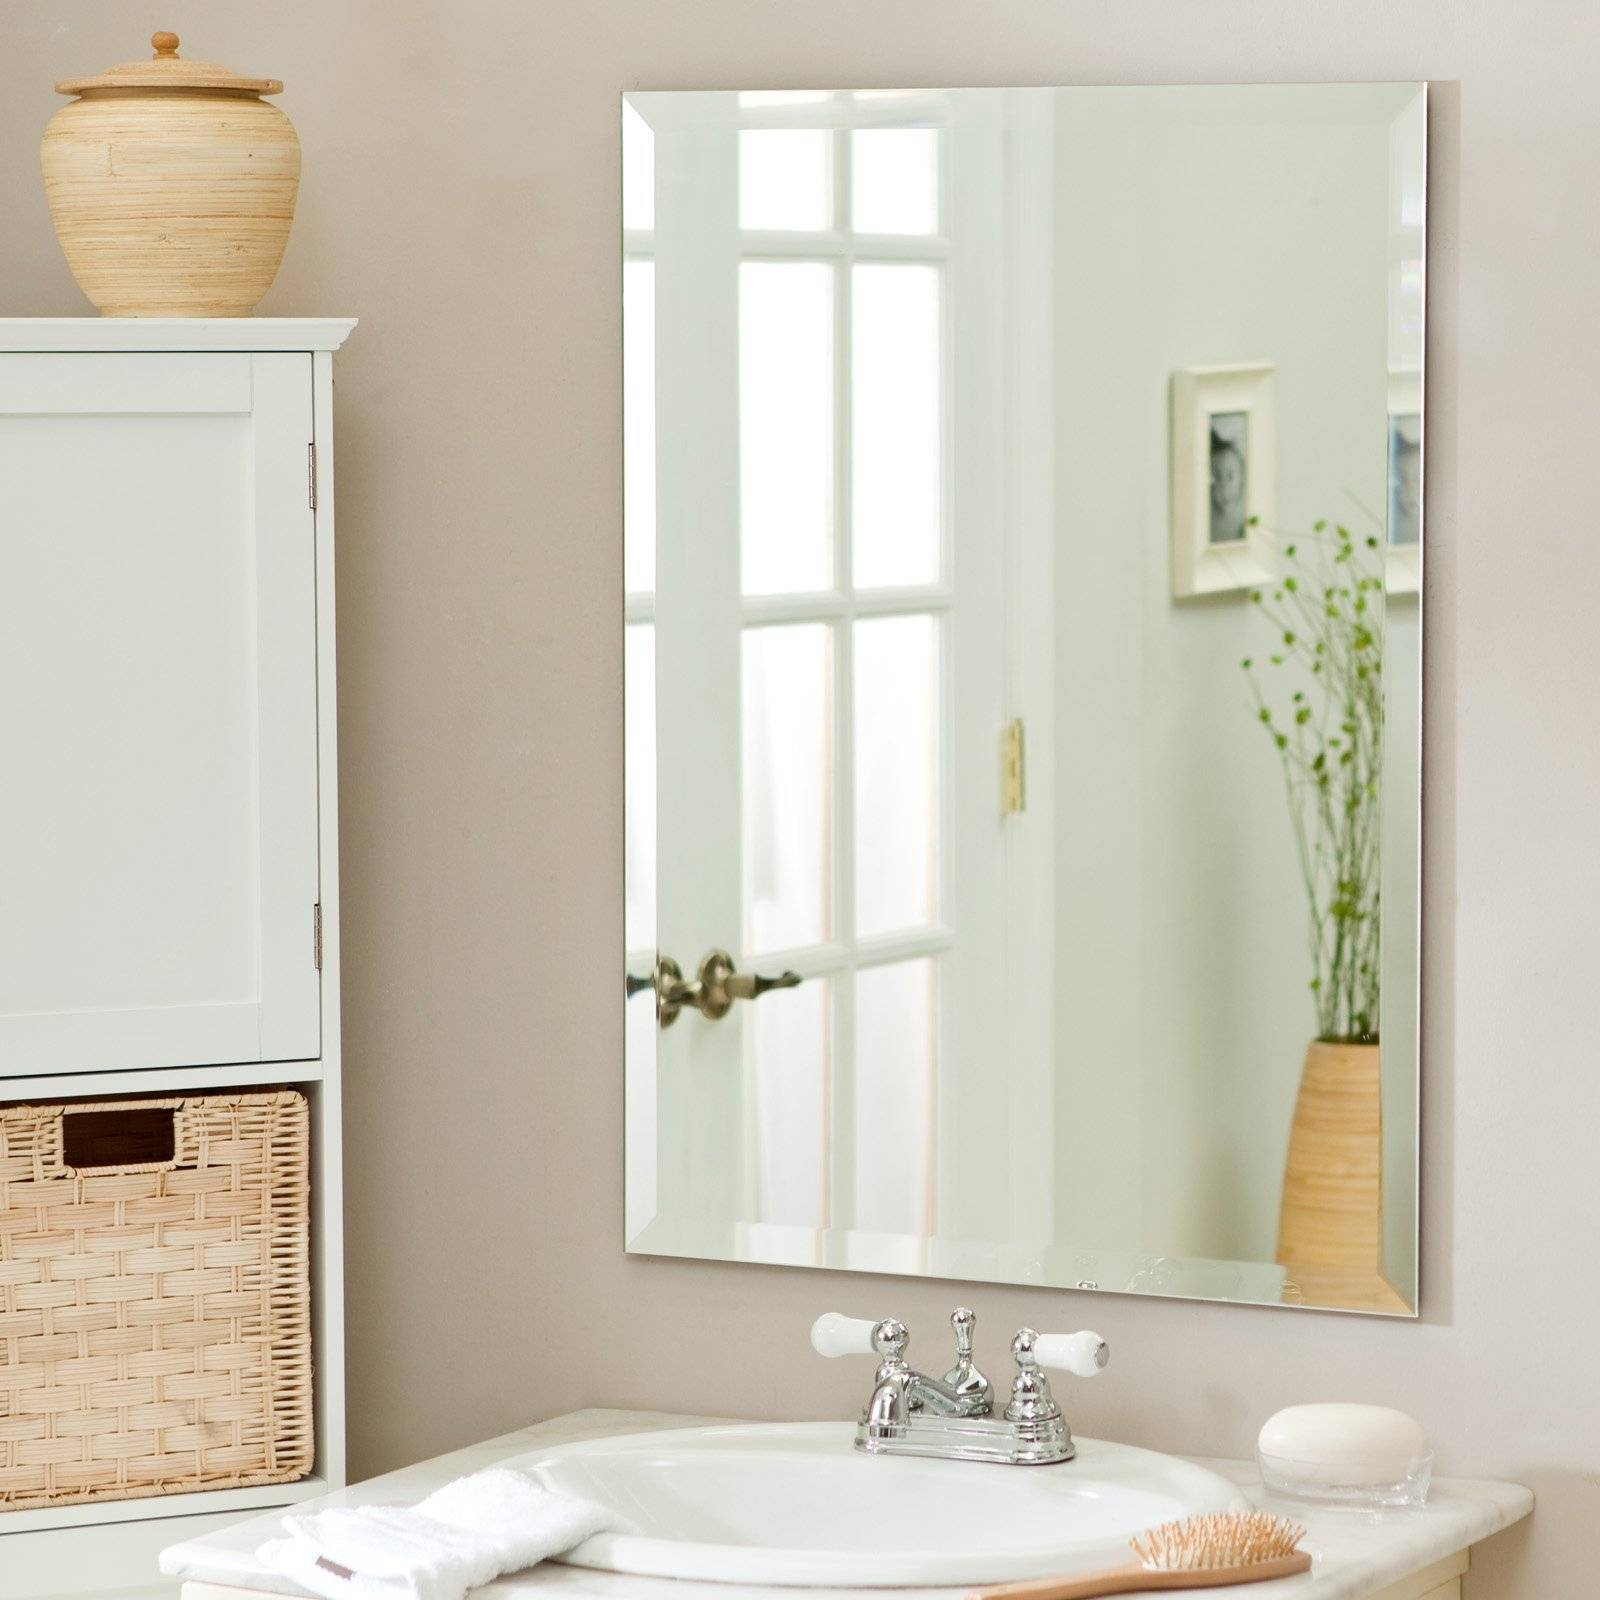 Large Bathroom Mirror Frameless – Harpsounds (View 8 of 25)